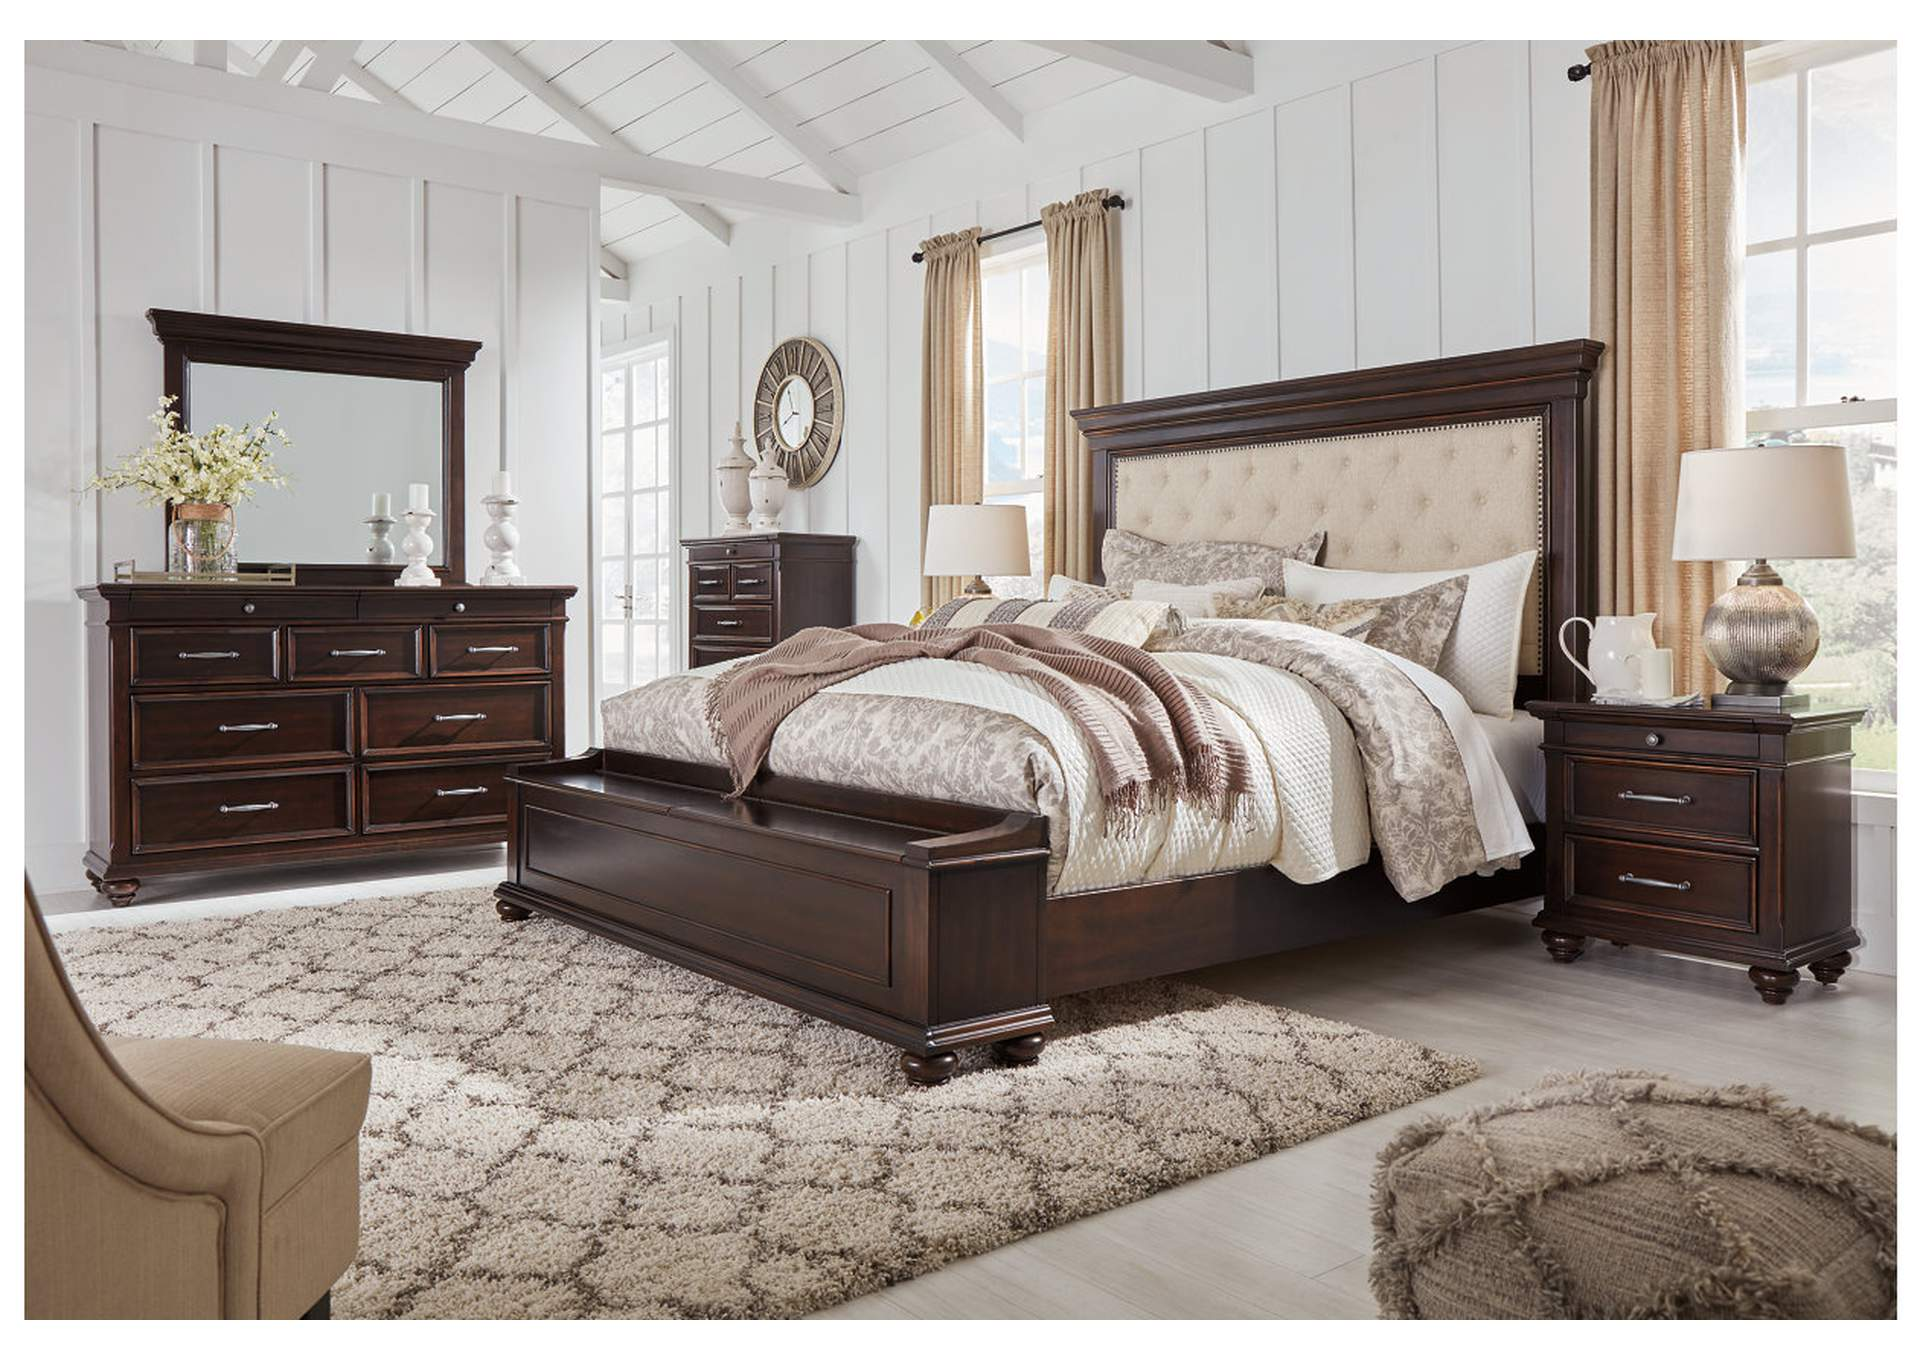 Brynhurst Brown King Upholstered Storage Bed Dresser w/Mirror,Signature Design By Ashley